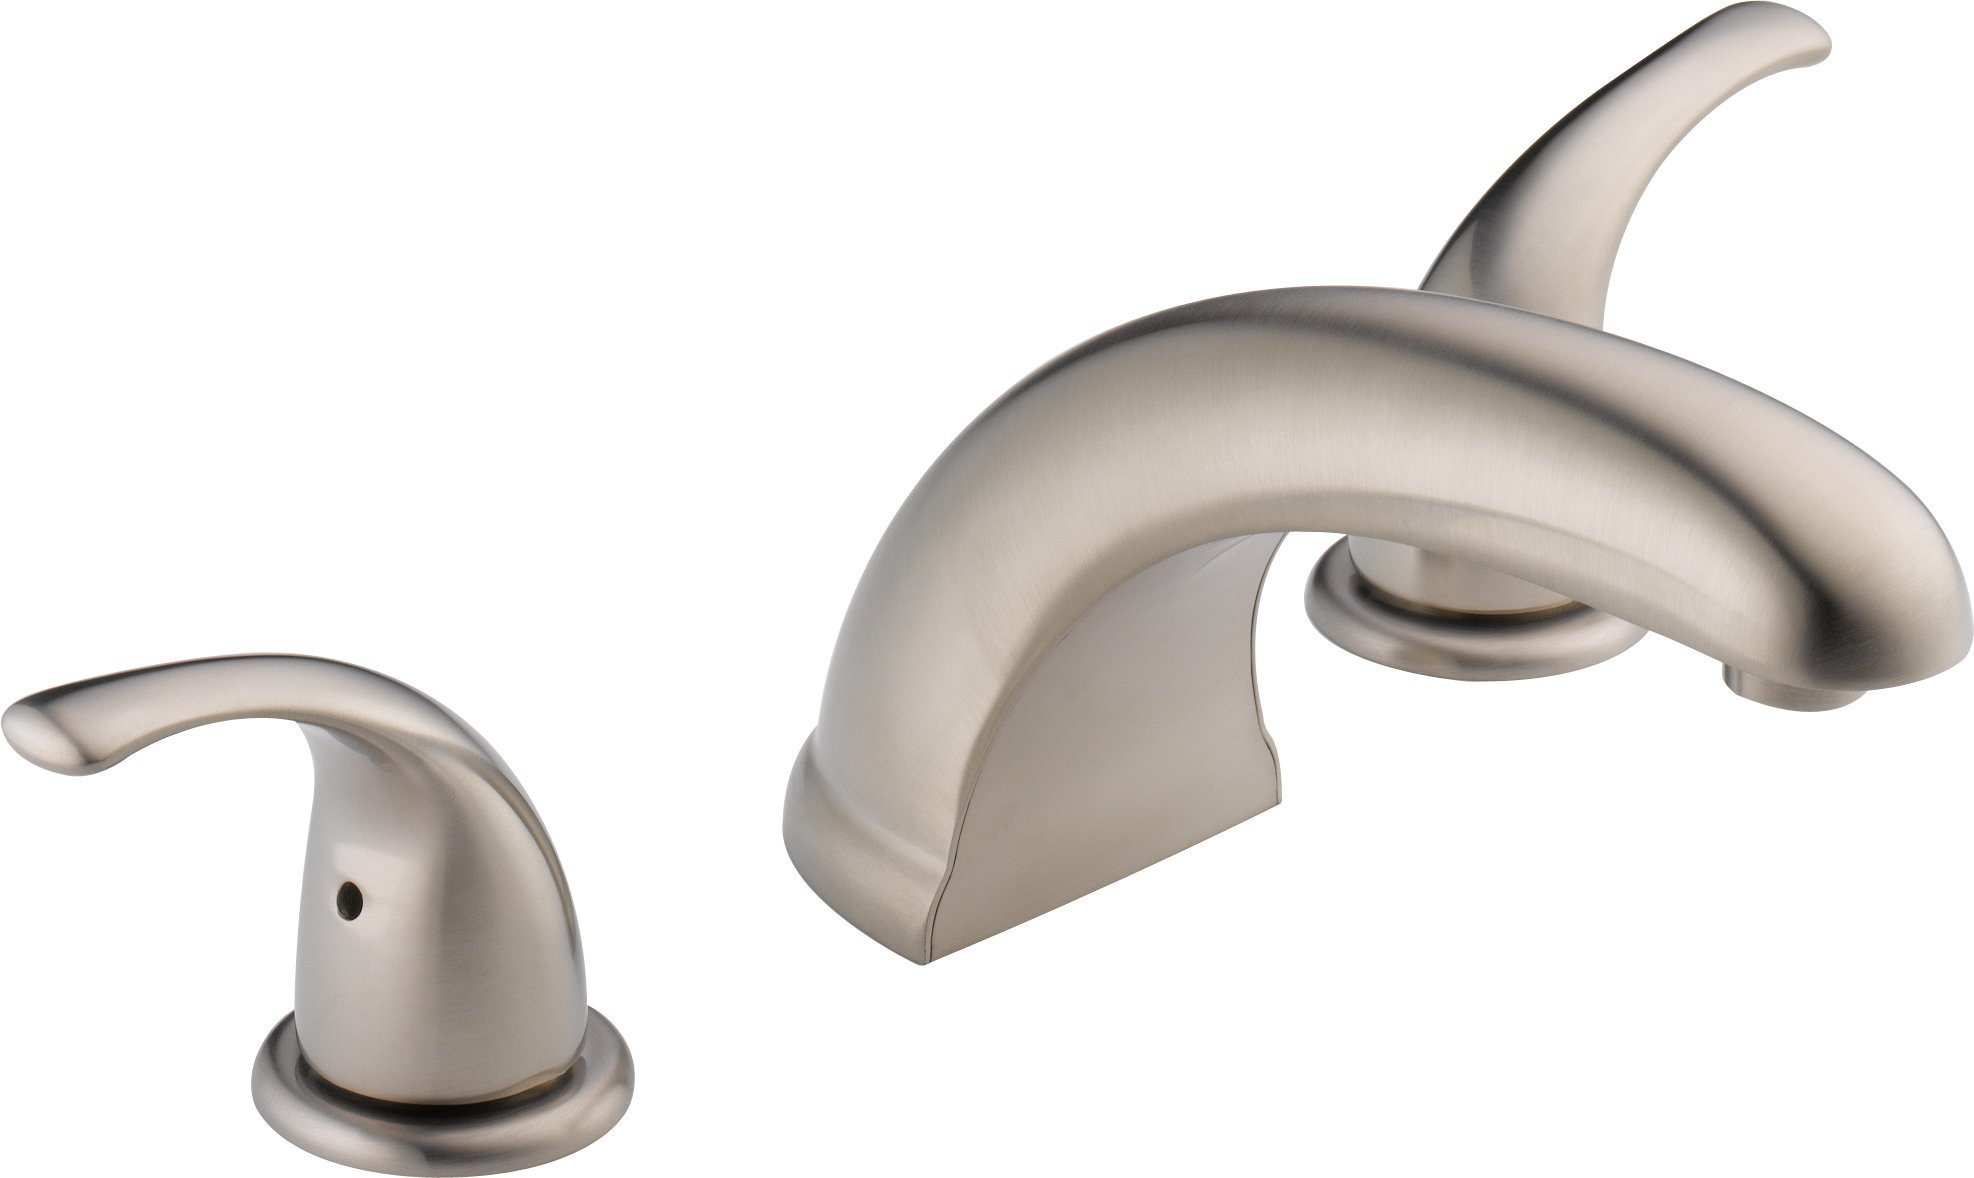 Peerless PTT298510-BN Choice Two Handle Roman Tub Trim, Brushed Nickel (Rough-in not included)